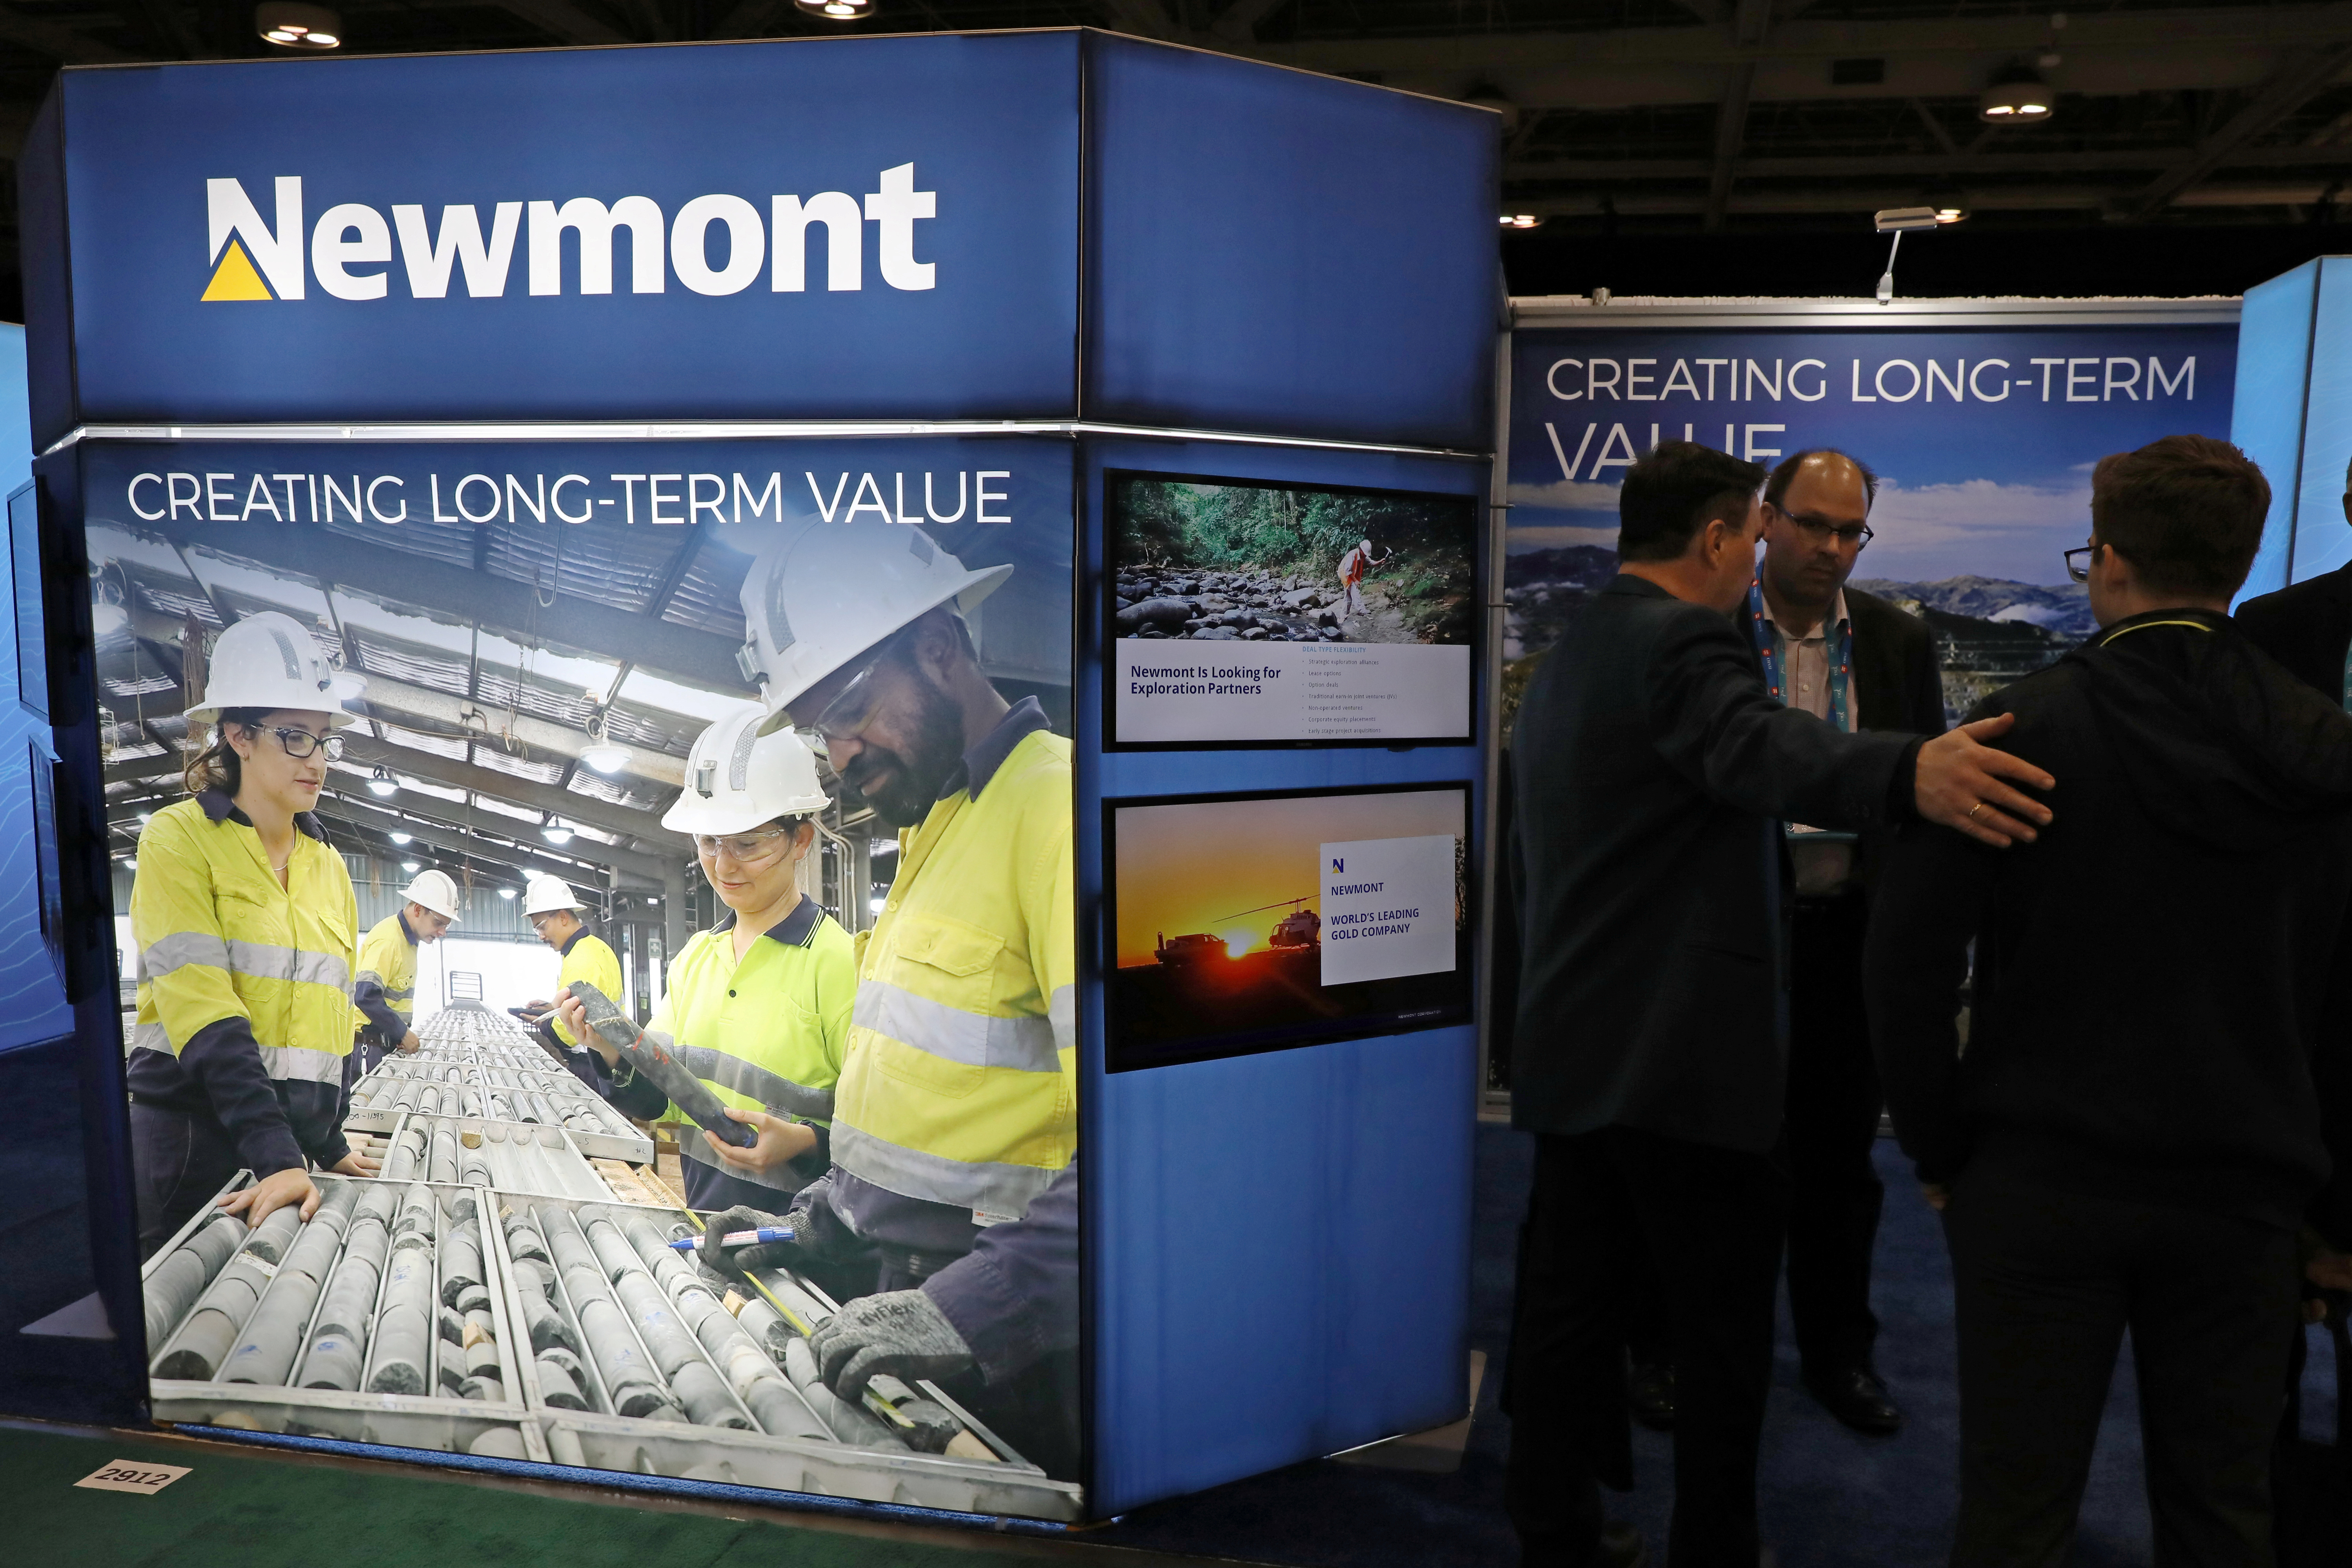 Visitors speak with a representative at the Newmont Corp booth at the Prospectors and Developers Association of Canada (PDAC) annual conference in Toronto, Ontario, Canada March 1, 2020.  REUTERS/Chris Helgren